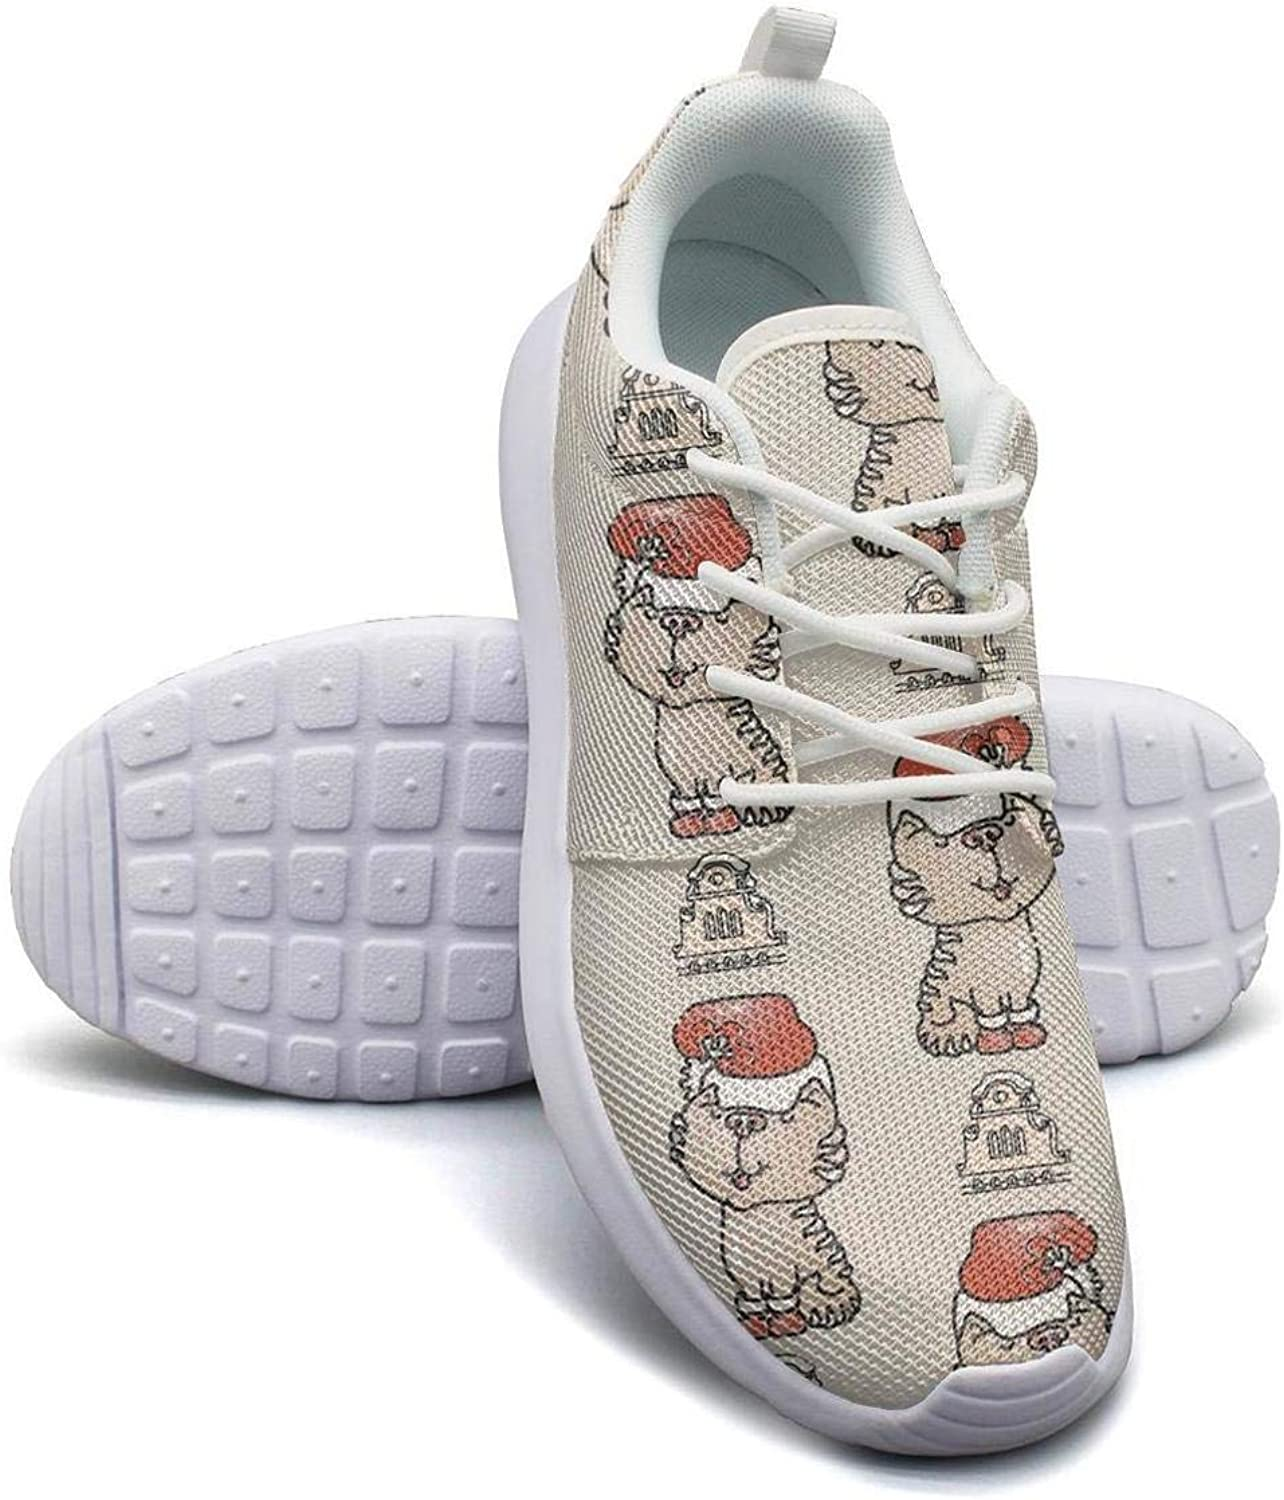 Gjsonmv Black Background Snowman Christmas mesh Lightweight shoes for Women lace up Sports Cycling Sneakers shoes